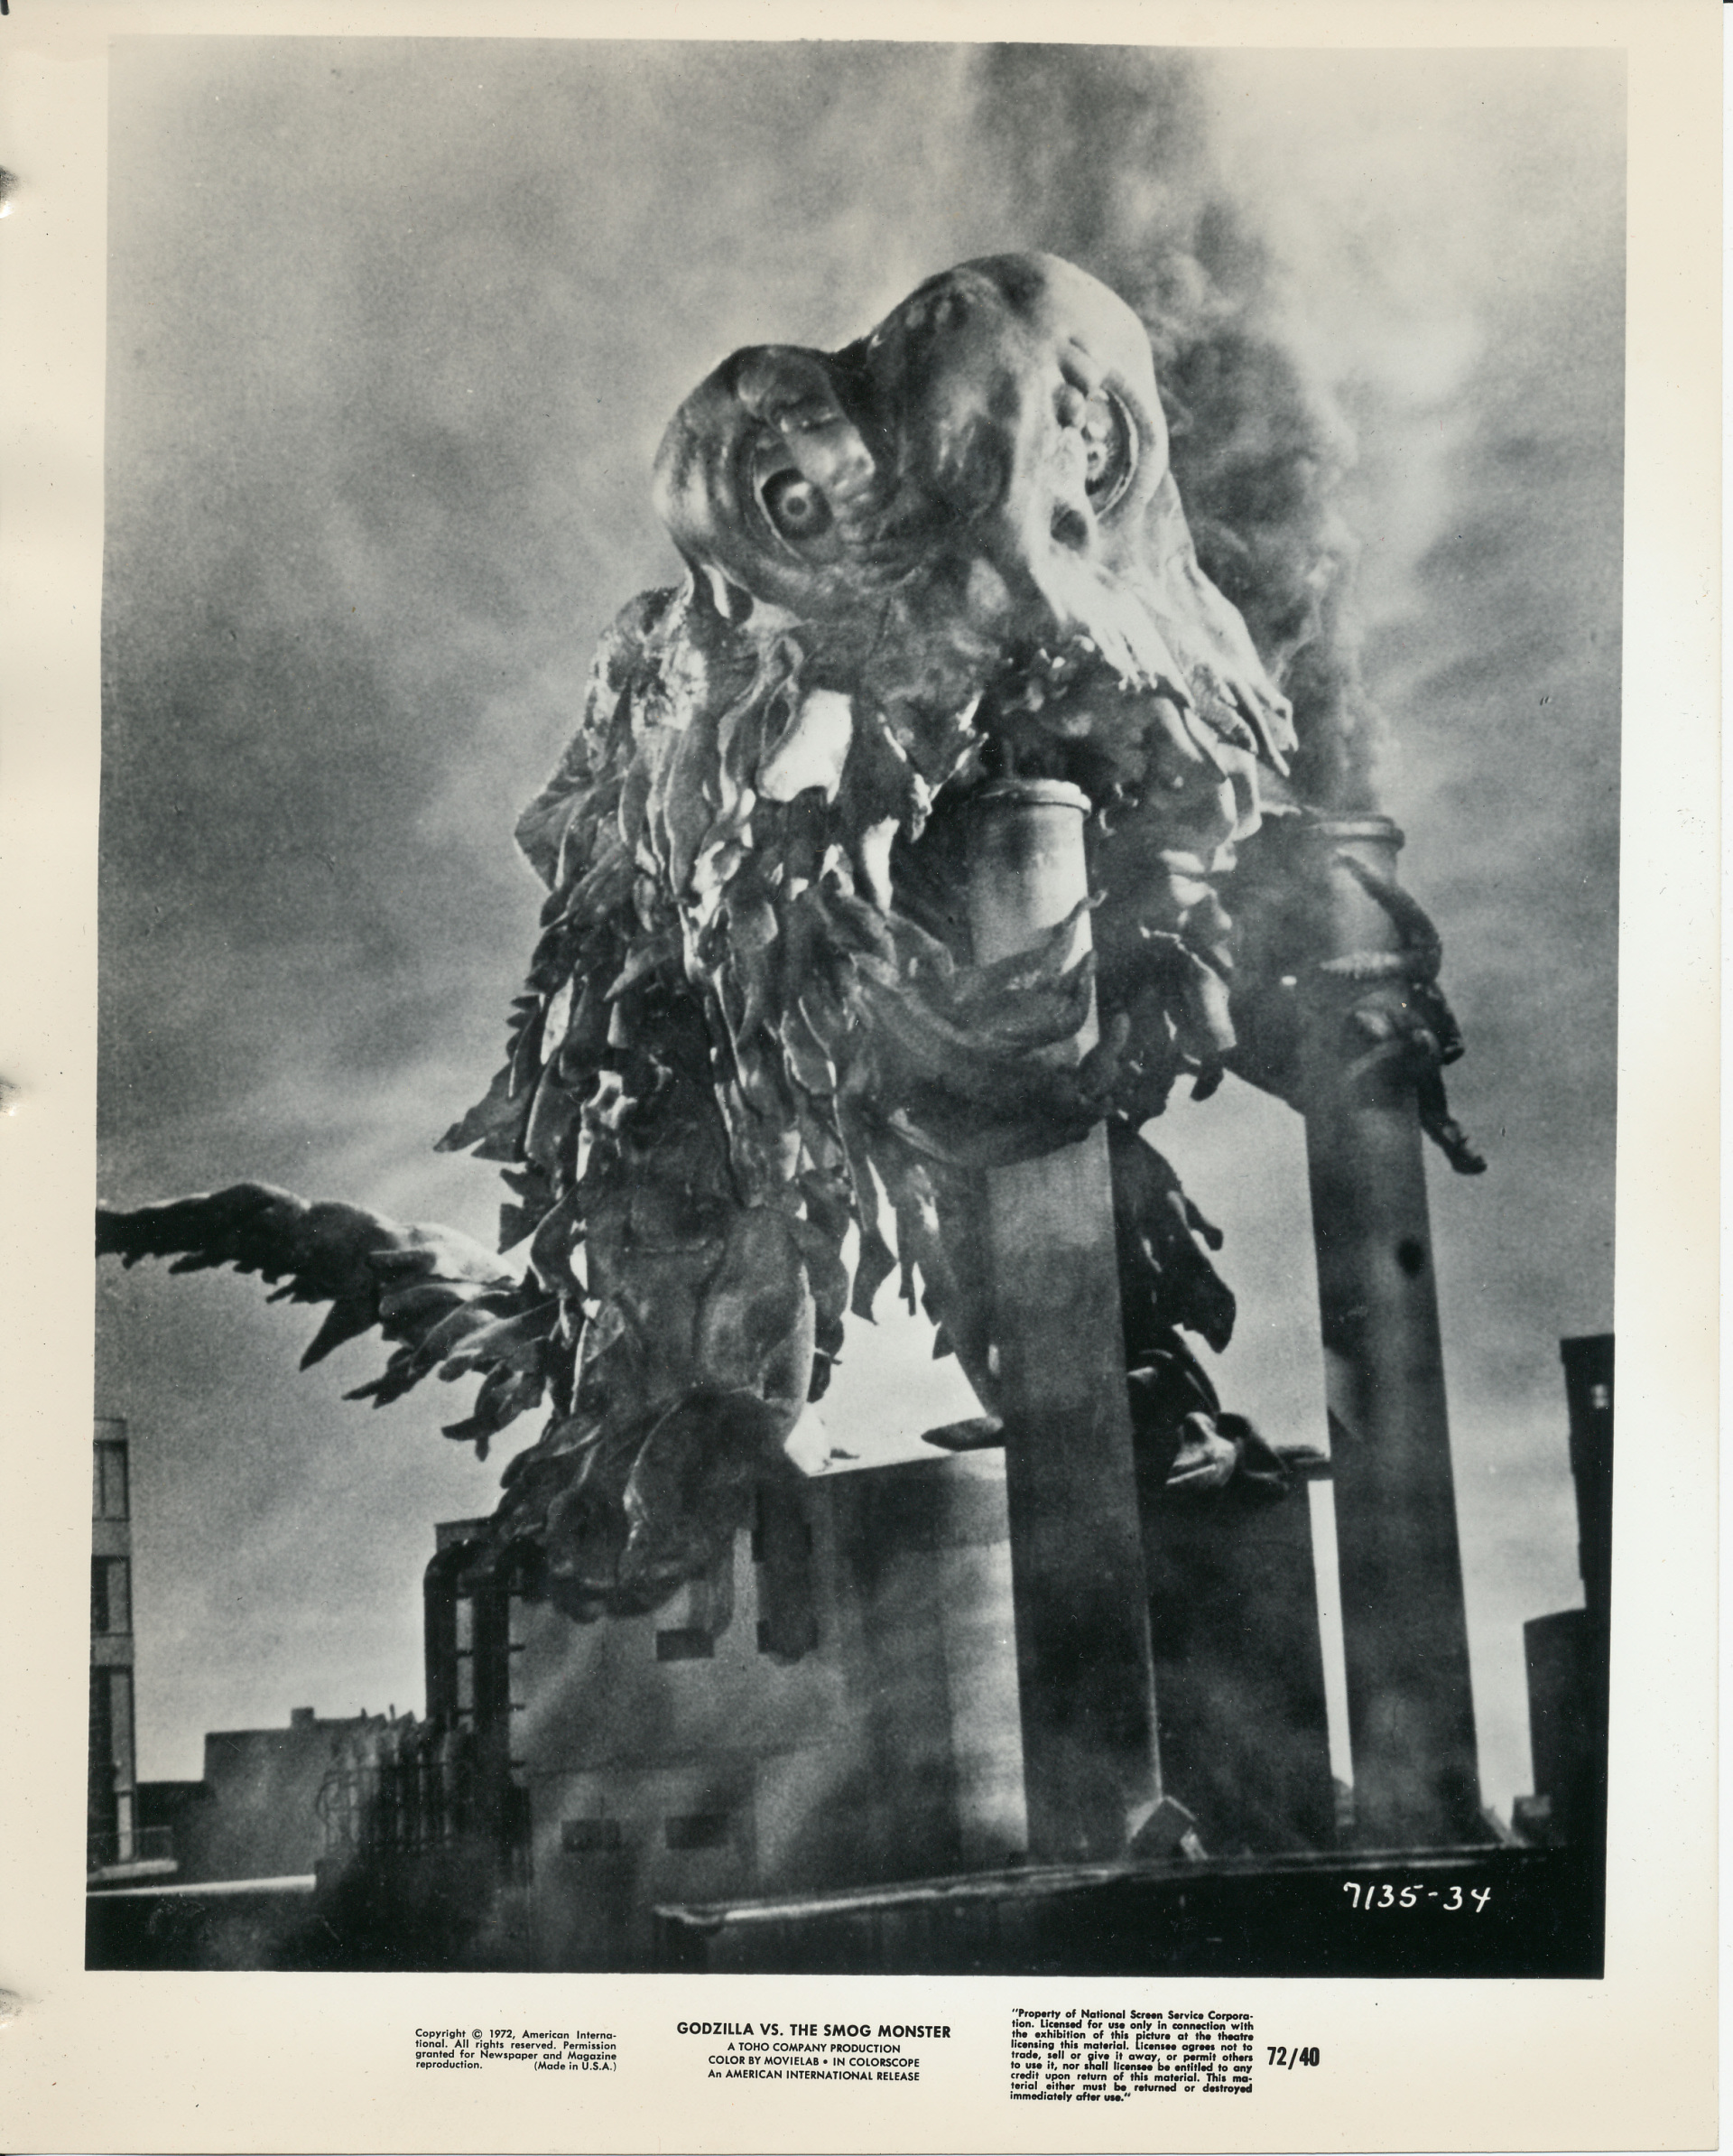 godzilla-vs-the-smog-monster 1971 film 	FSK 12 ゴジラ対ヘドラ Hedorah #pollution #climate catastrophe